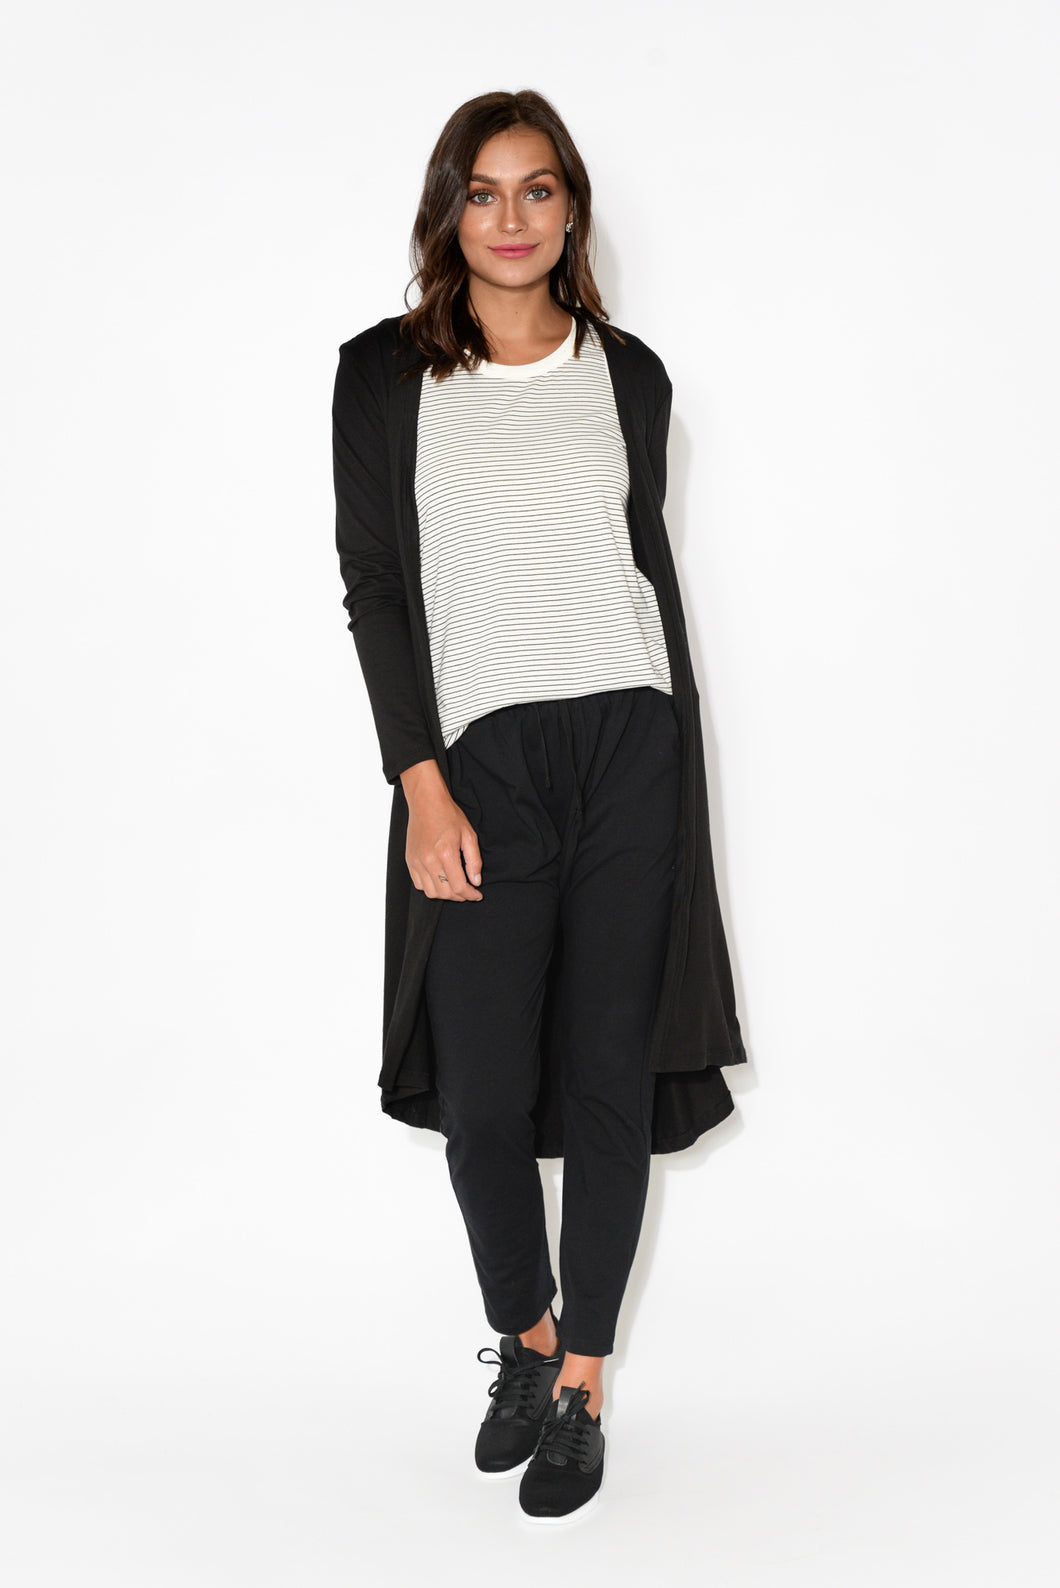 Scarlett Black Cotton Cardigan